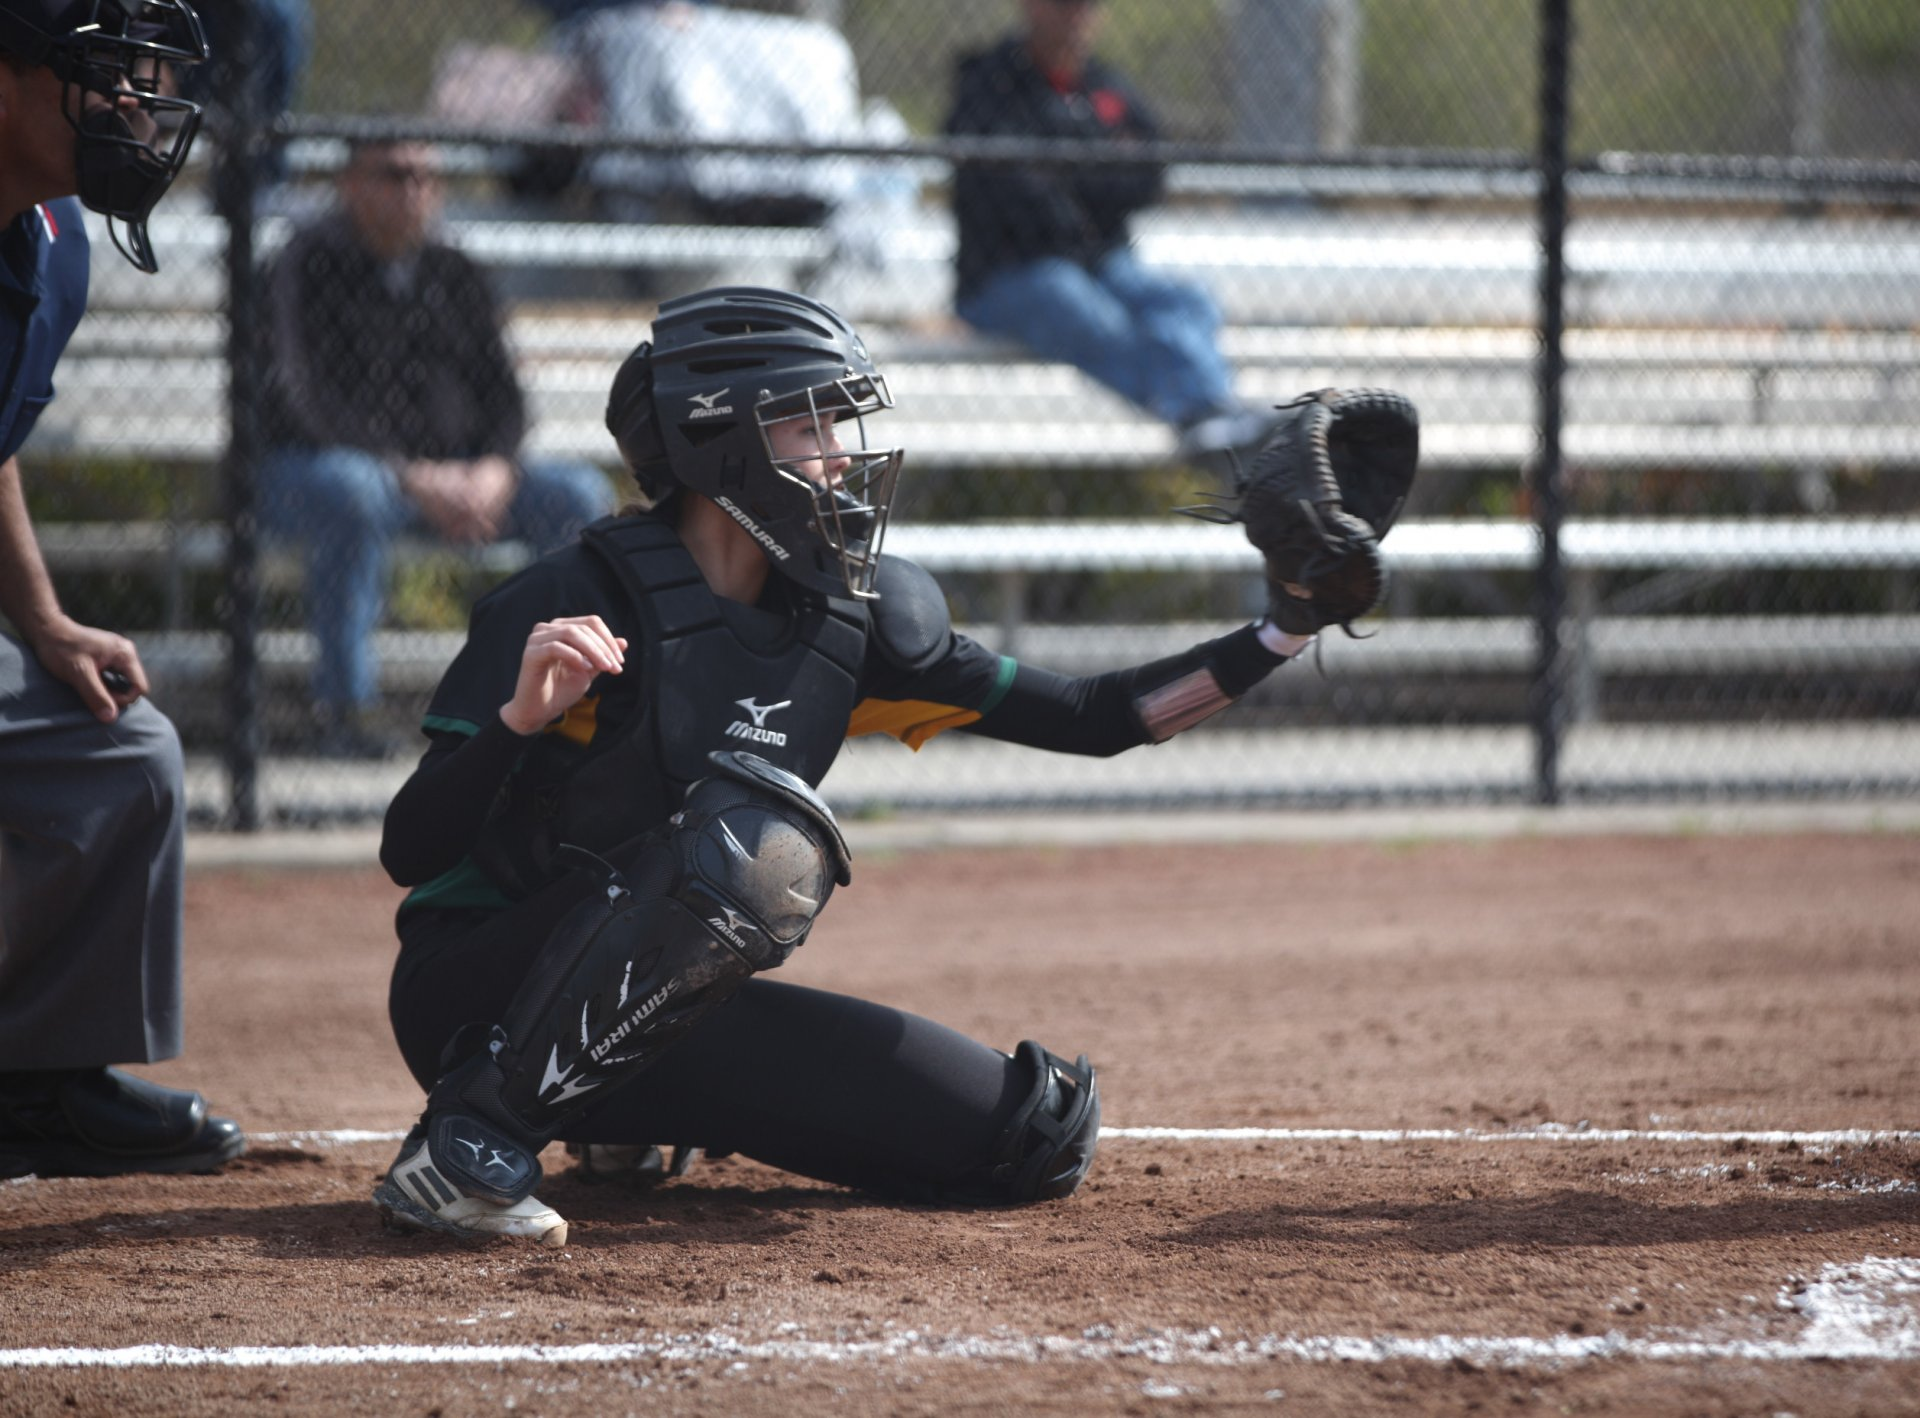 Freshman catcher Micaela Harris sets up for the incoming pitch. The Jacks dropped the doubleheader against Cal State East Bay on March 18 to split the four-game series over the weekend. Photo by Stephen Ellis.